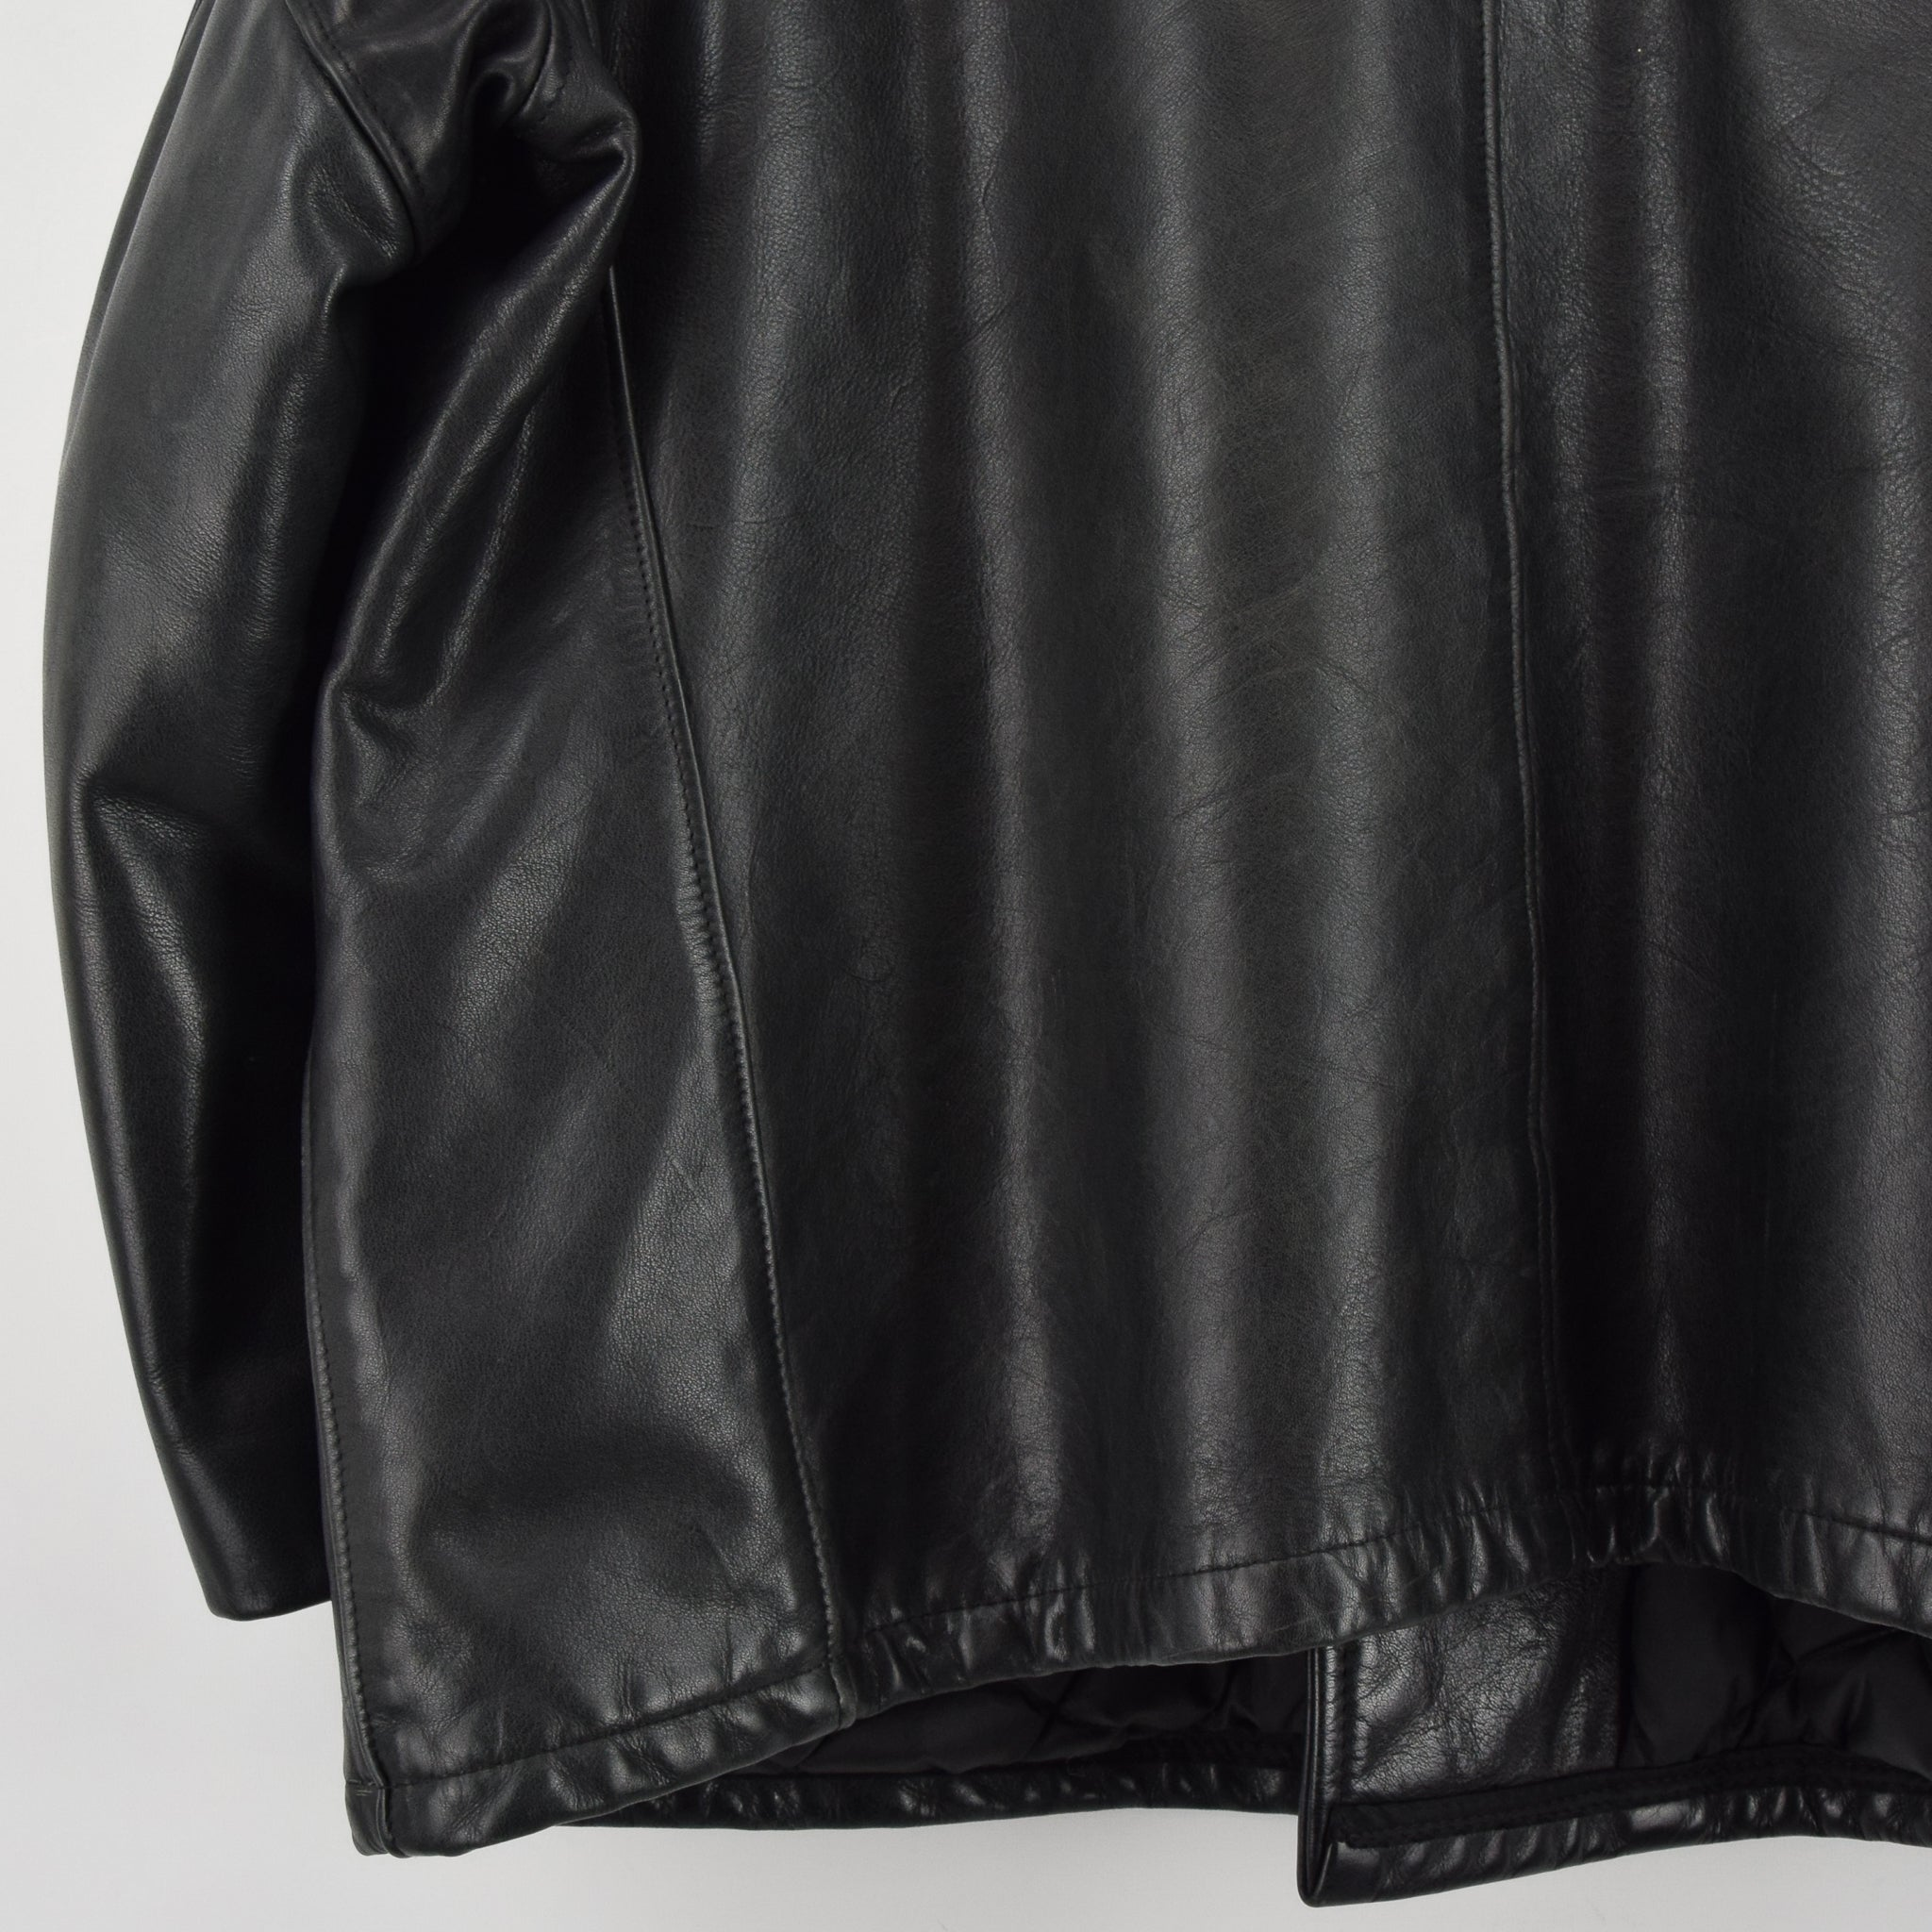 Vintage Schott NYC 740N Black Leather Pea Coat Reefer Jacket USA Made XXL / XXXL back hem